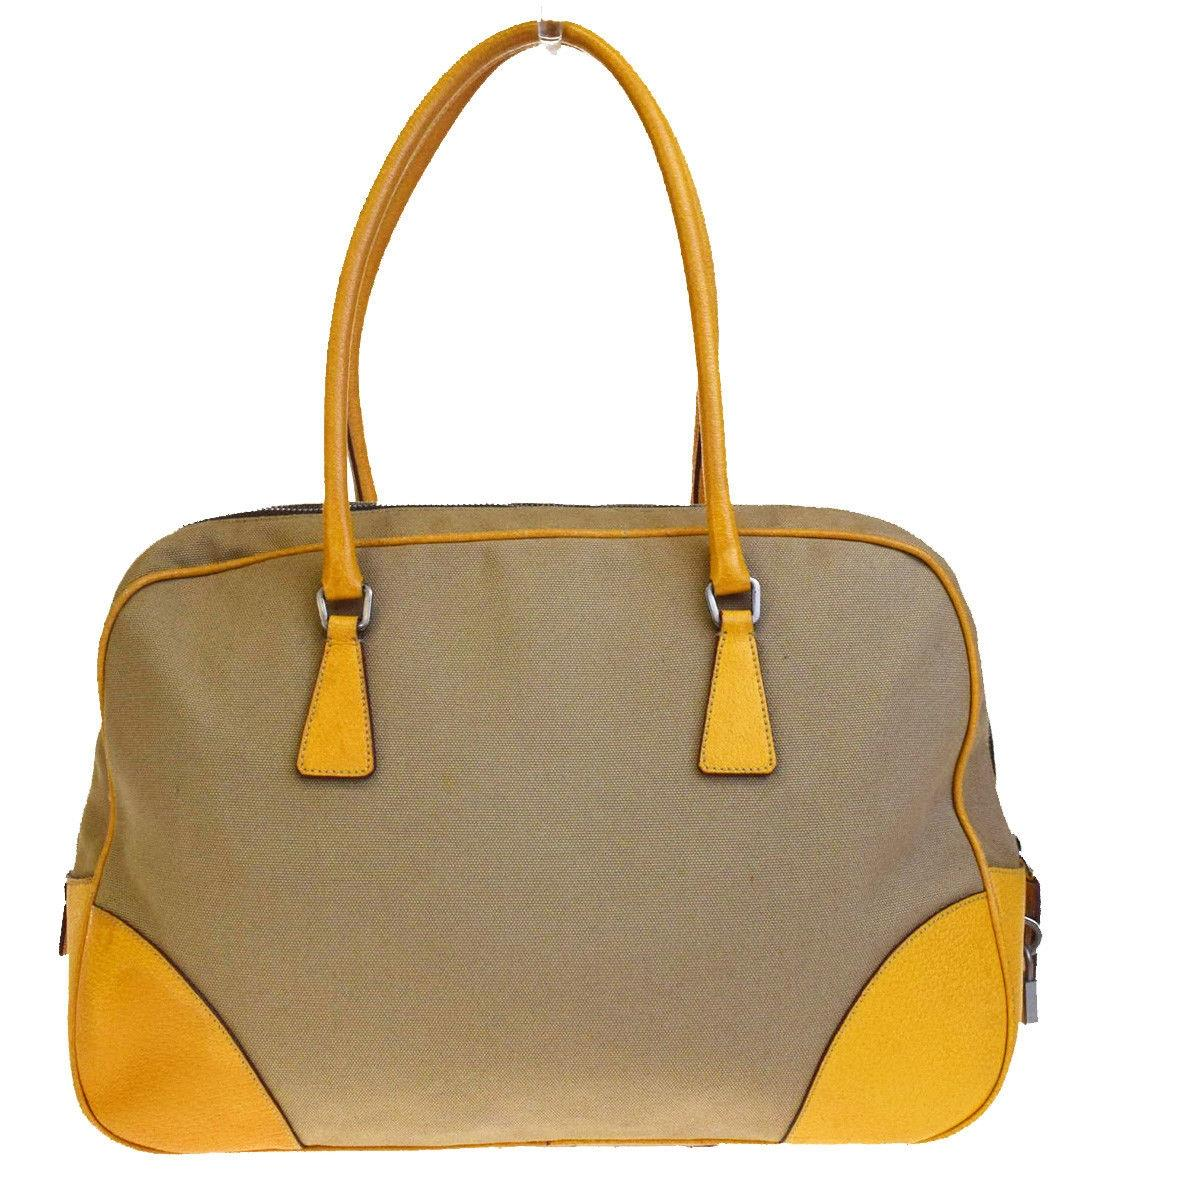 get prada saffiano leather small bag bl0809 grey yellow d215a 1737f  sale prada  made in italy tote in beige.yellow. 123456789 d682c 875a5 4586b74d2284f